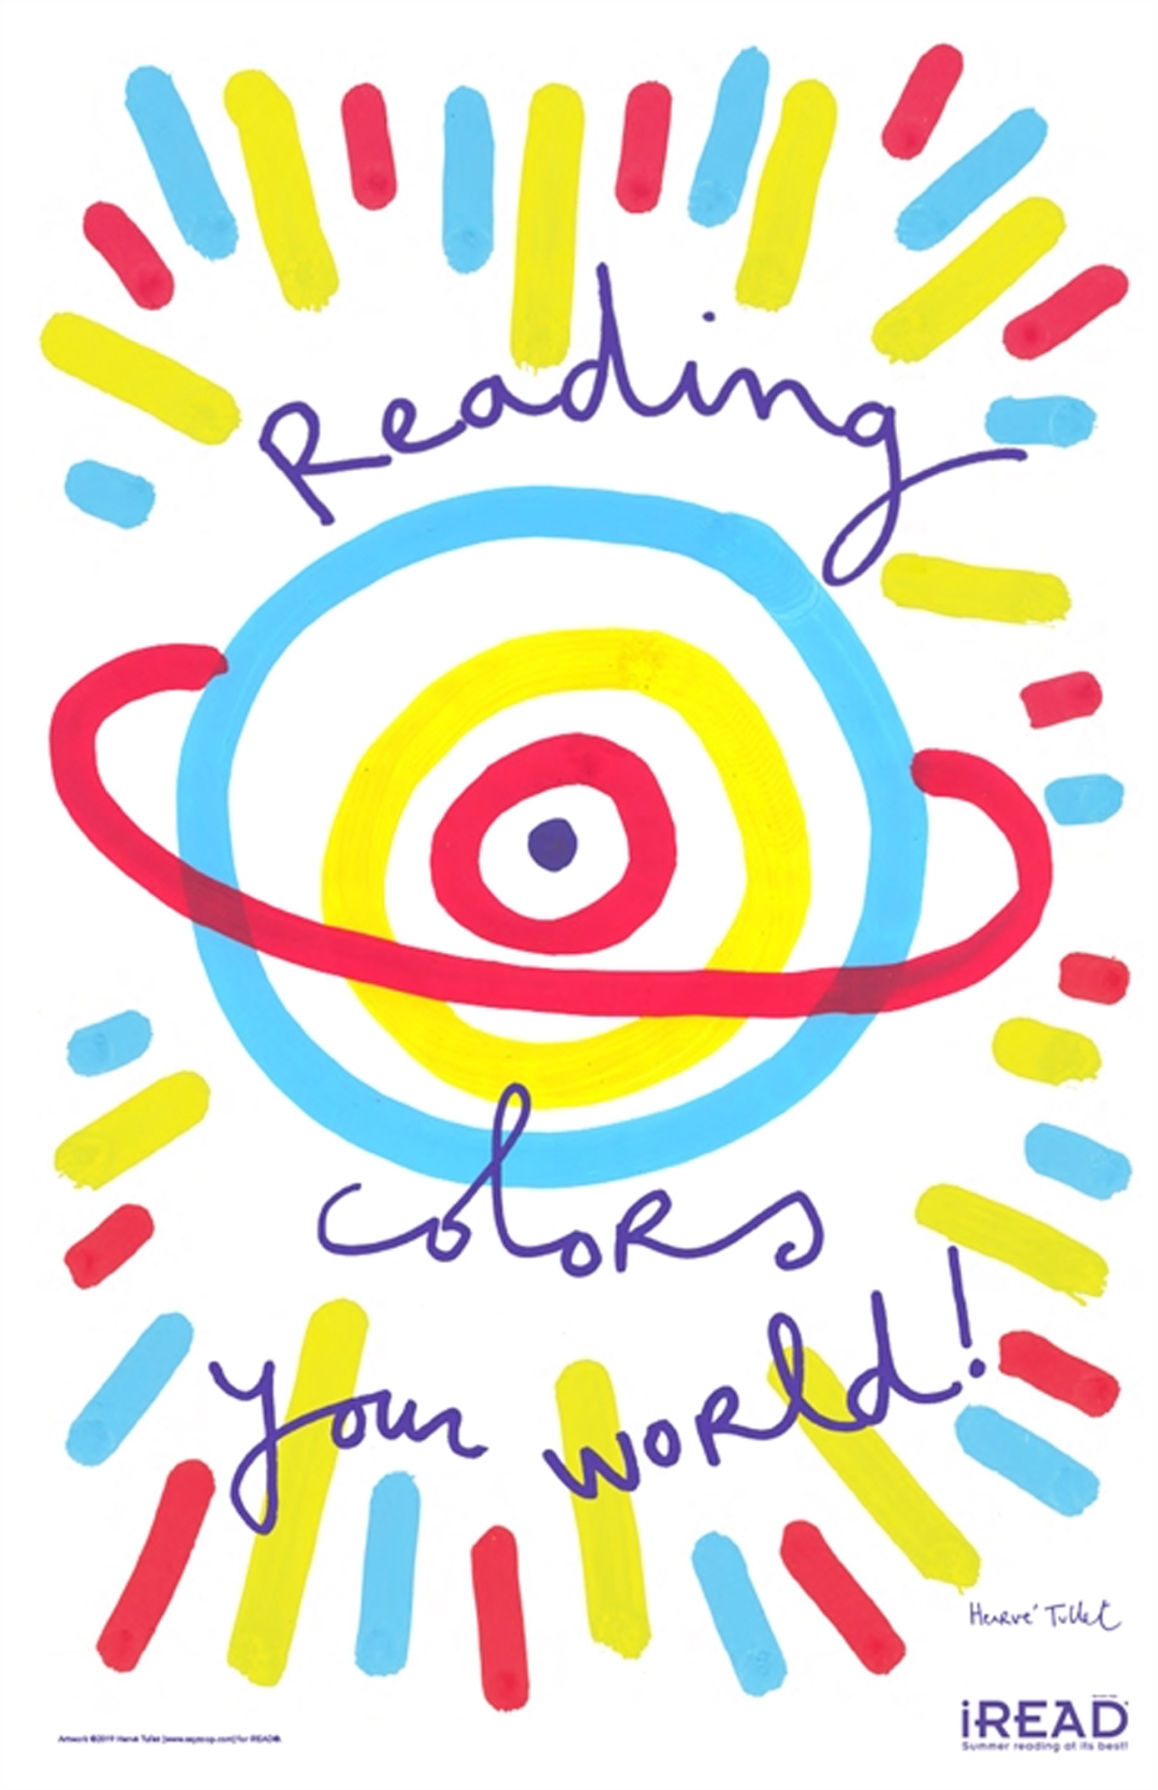 Reading Colors Your World graphic